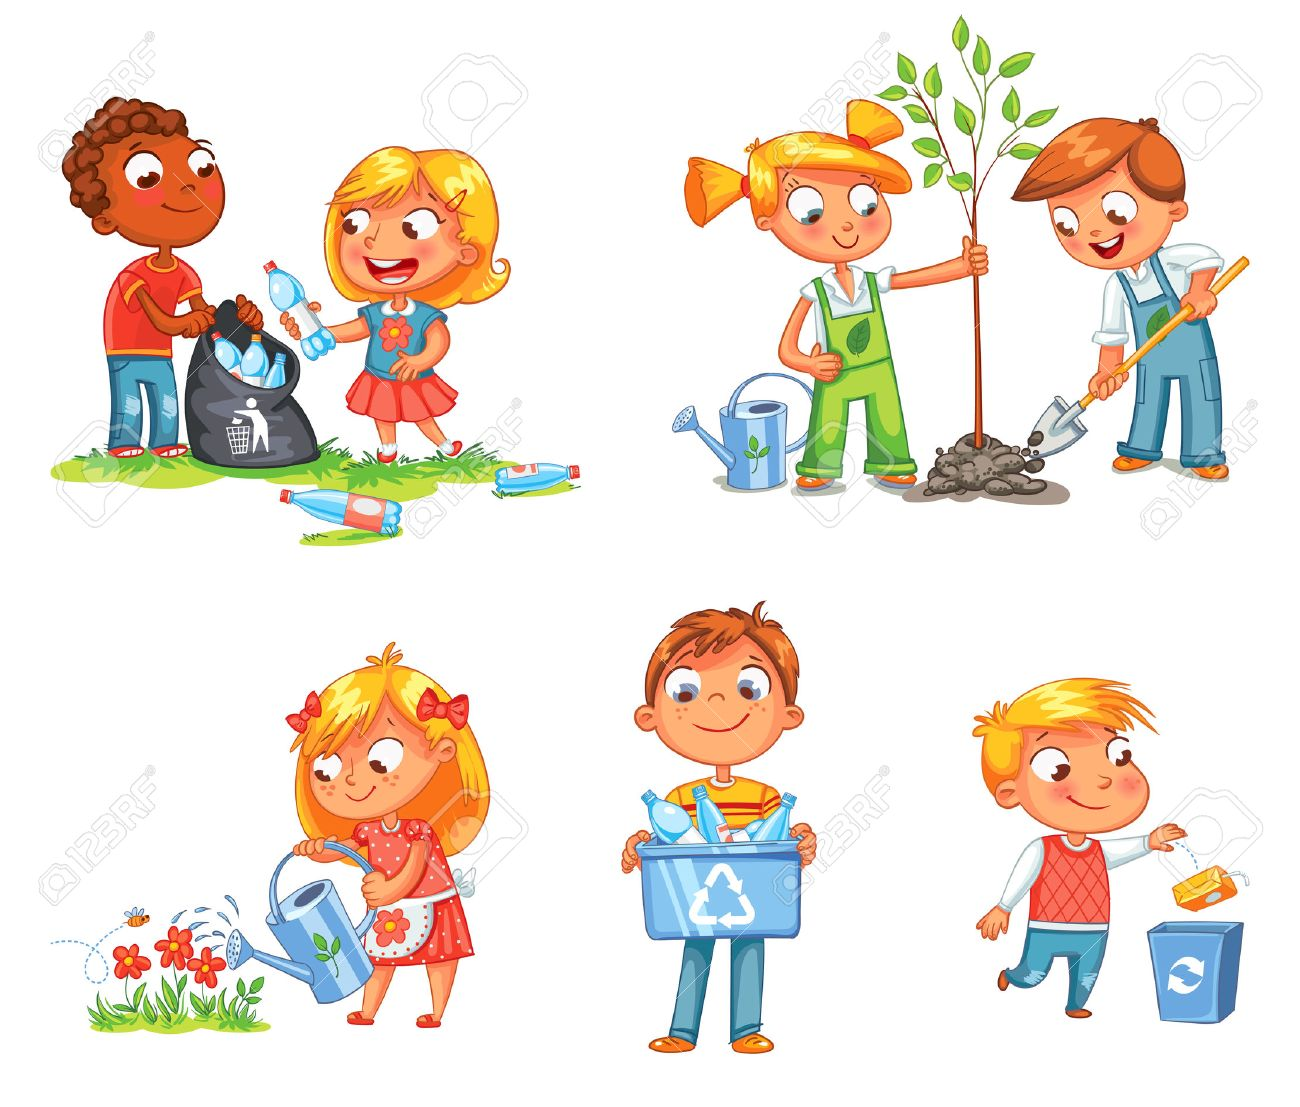 Save Earth. Waste recycling. Children planted young trees. Girl watering flowers from watering can. Kids gathering plastic bottles for recycling. Boy throws litter into bin. Isolated white background - 69019262